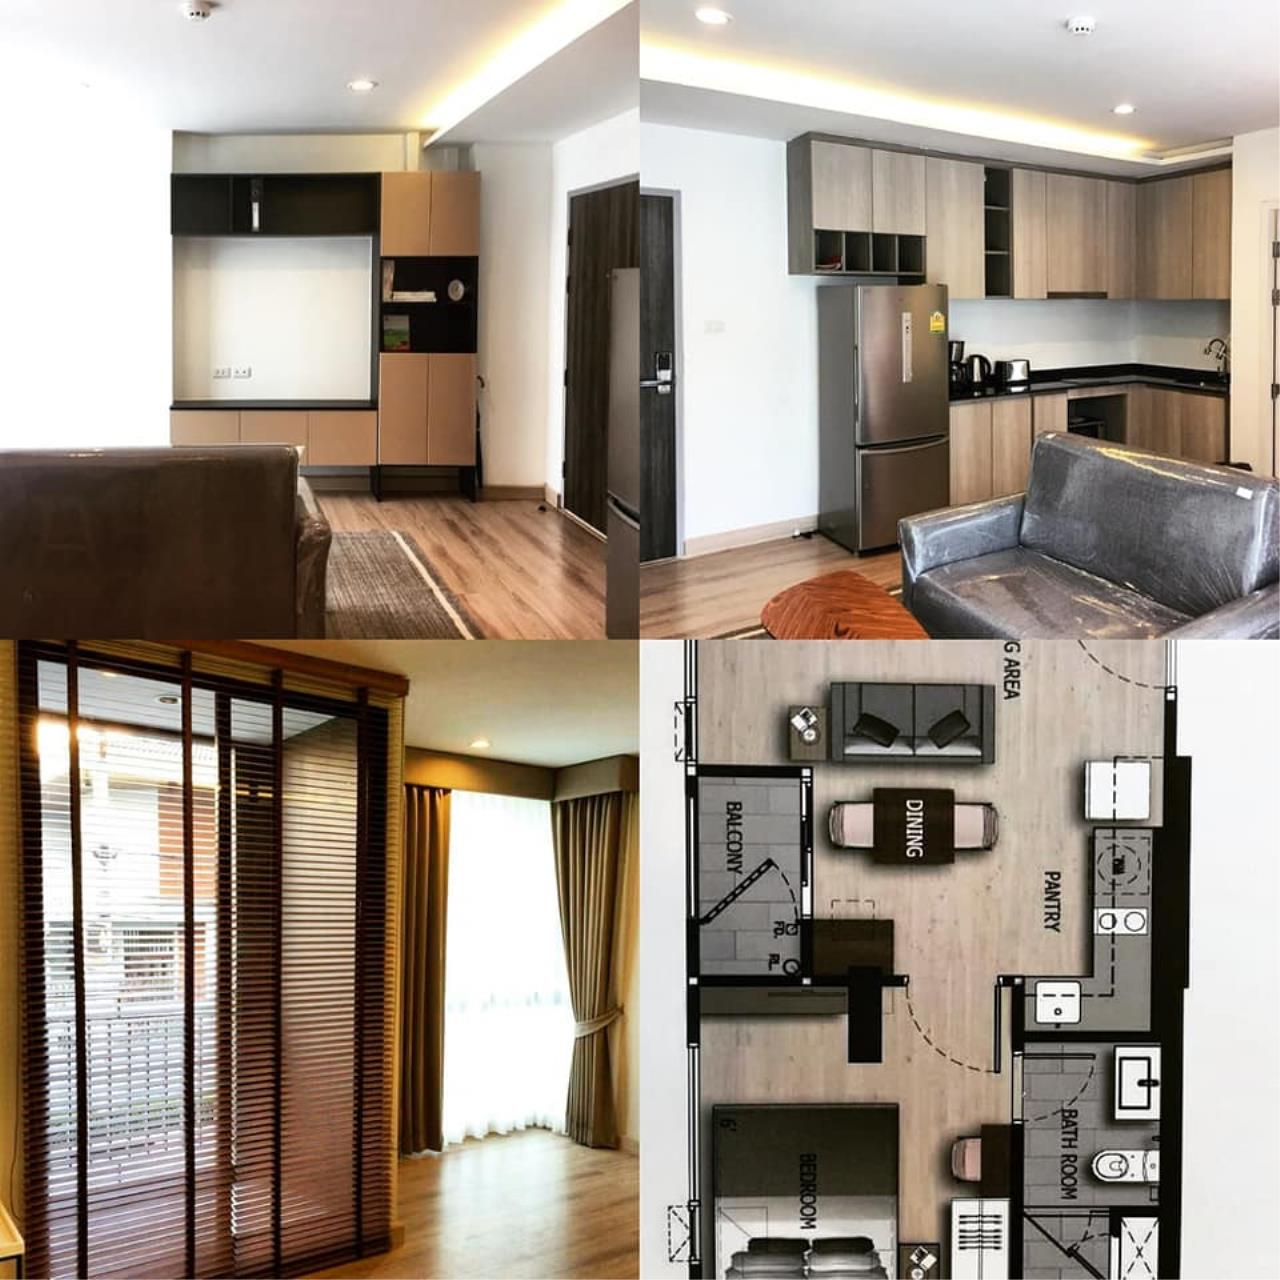 Agent - Prombood Agency's Sale - 1 Bedroom 36.5 sq.m. The Unique 19 near Ratchadapisek and Ladprao MRT Station 7